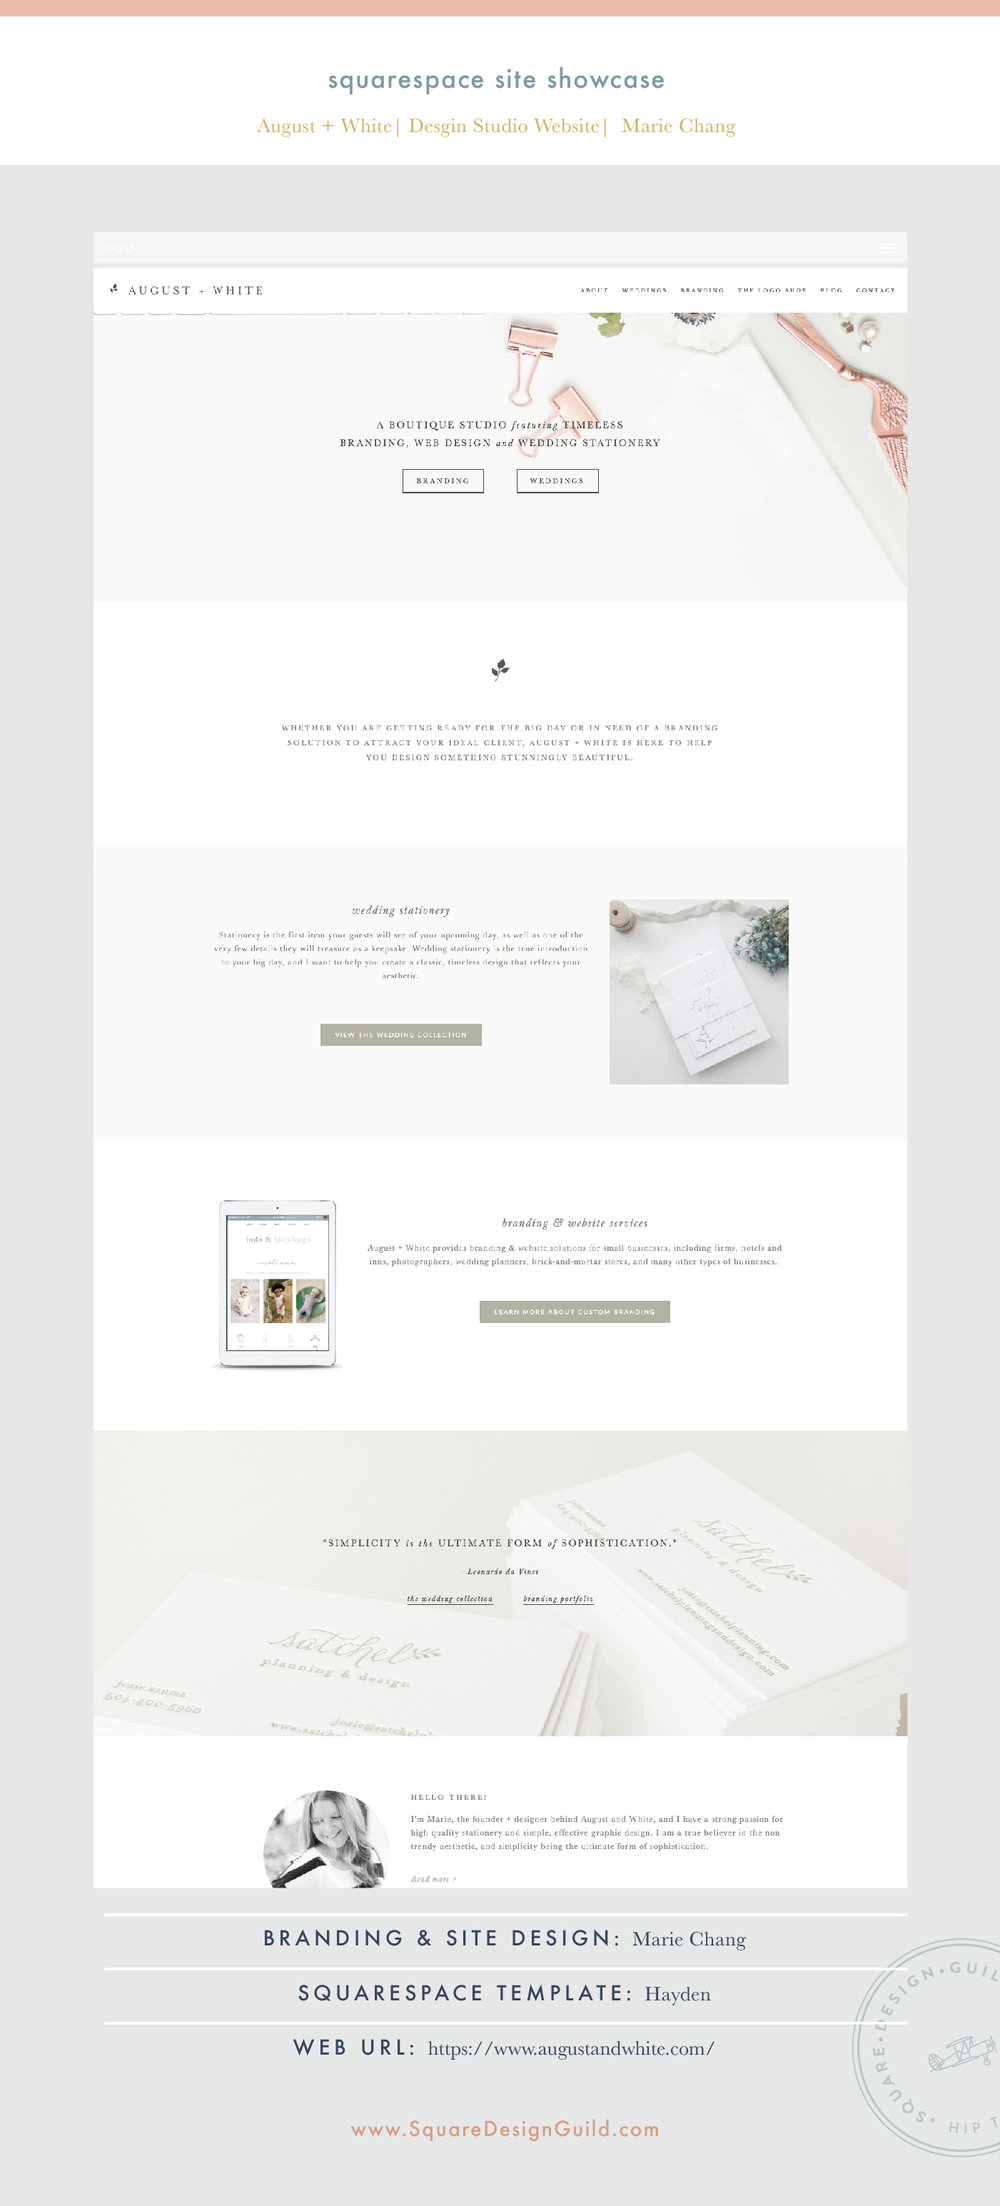 Square Design Guild | August and White Design Studio | Squarespace Site on Hayden Template